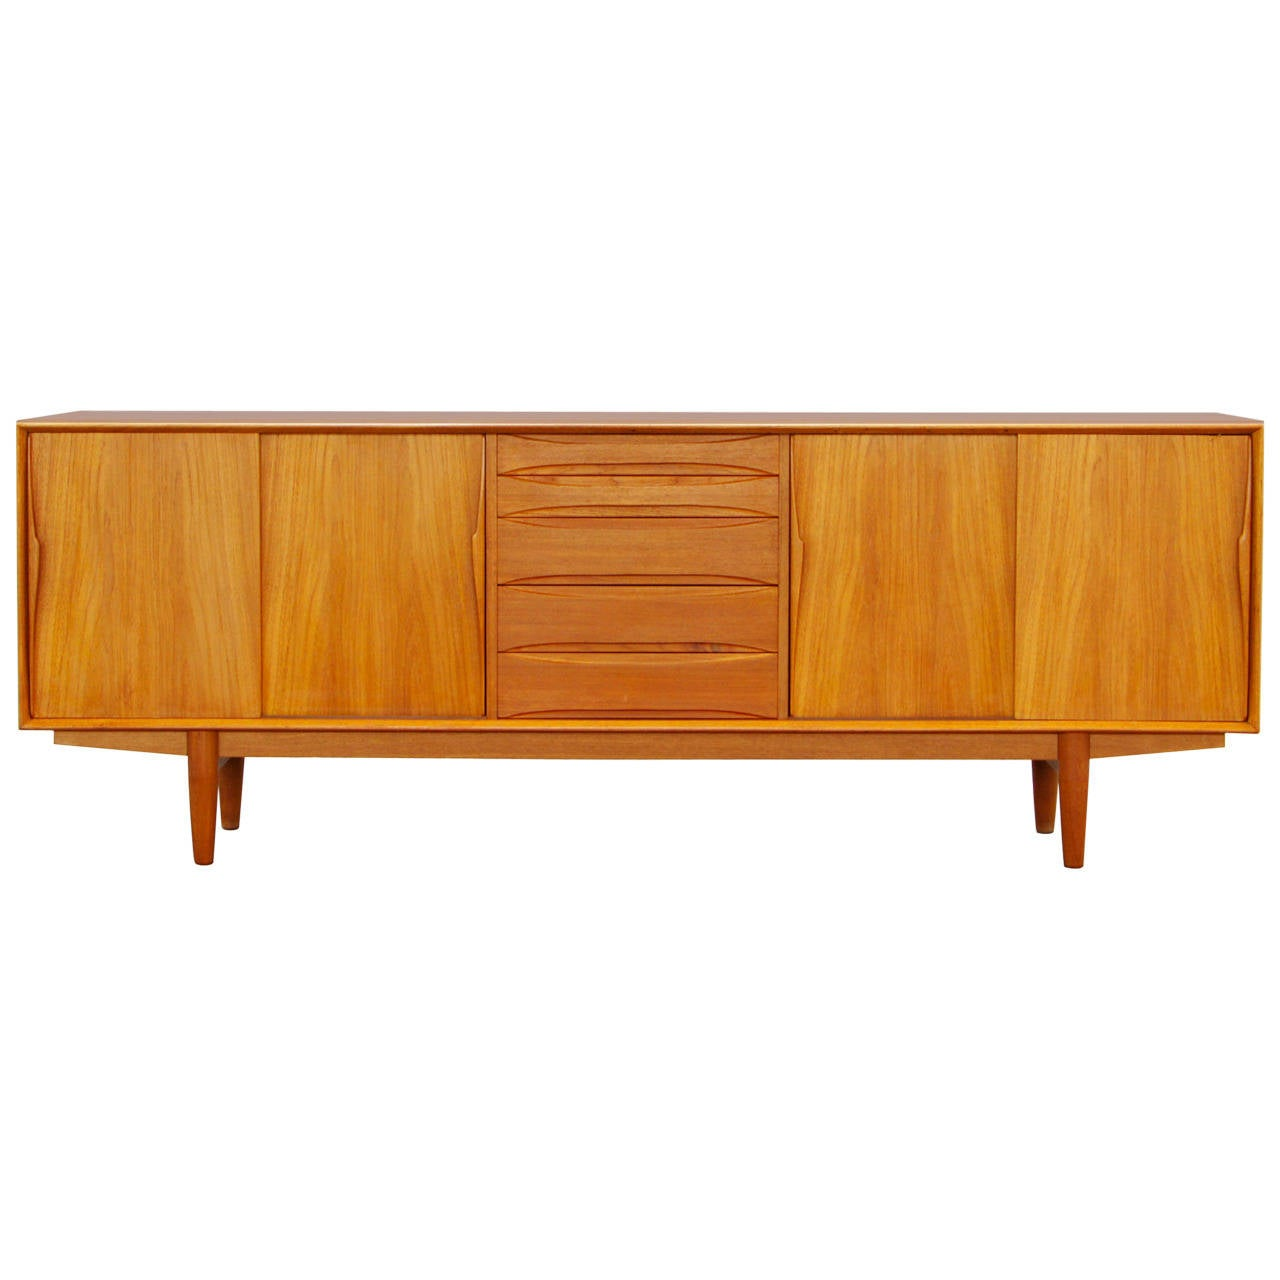 arne vodder teak sideboard danish mid century modern. Black Bedroom Furniture Sets. Home Design Ideas